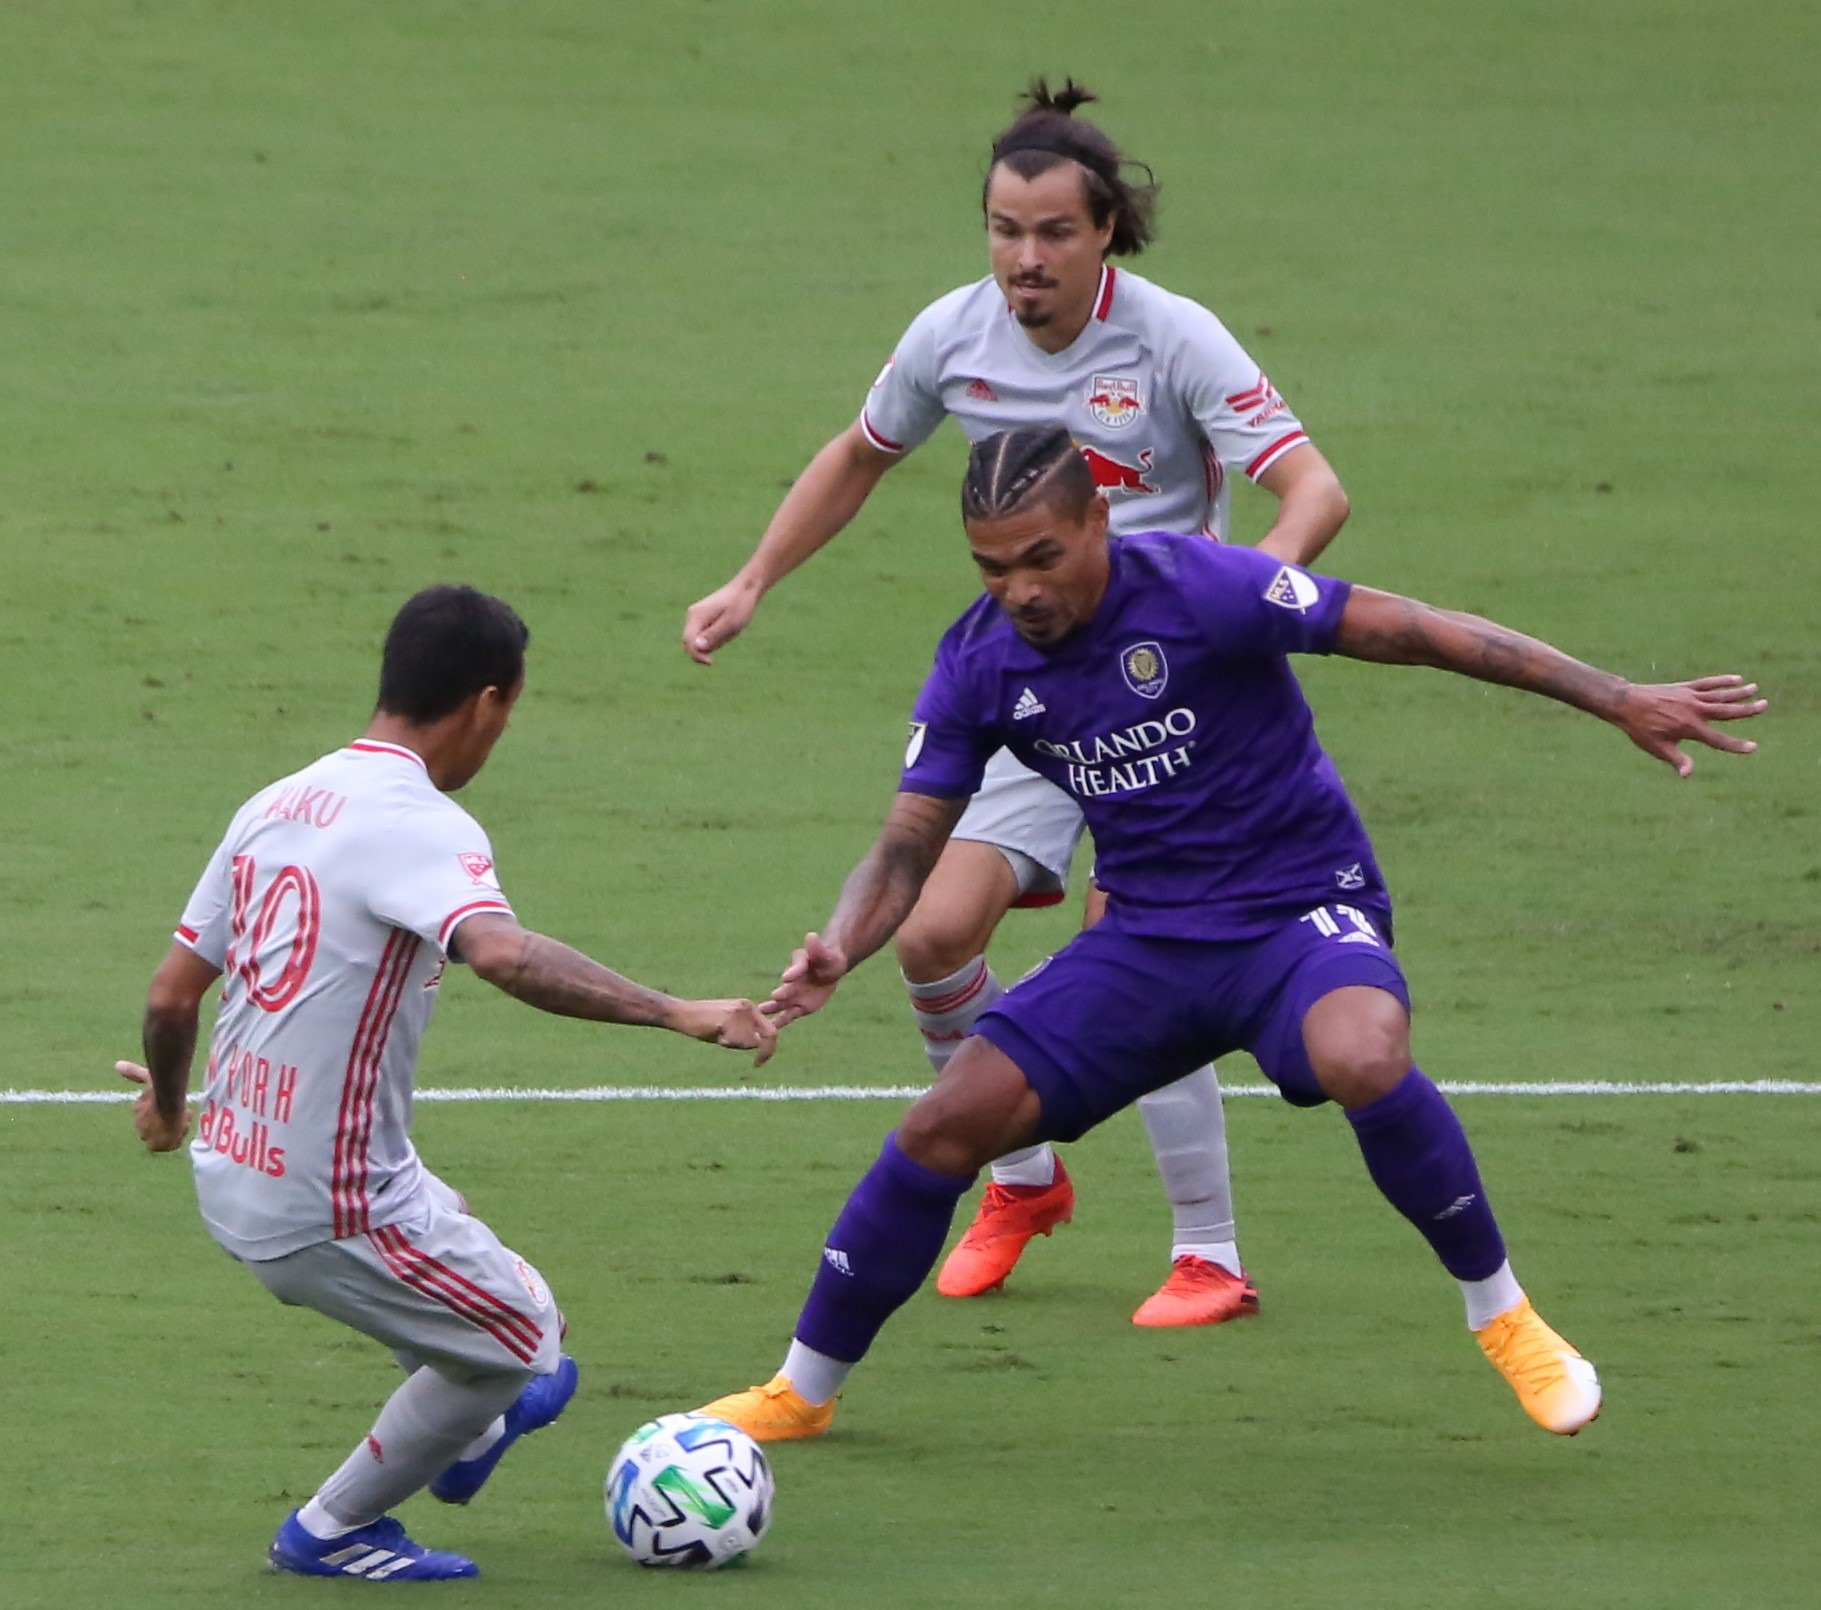 Orlando City SC's Junior Urso (in purple) scored for the Lions with an assist from Chris Mueller in the 50th minute against the New York Red Bulls at Exploria Stadium Saturday. Photo: Willie David / Florida National News.